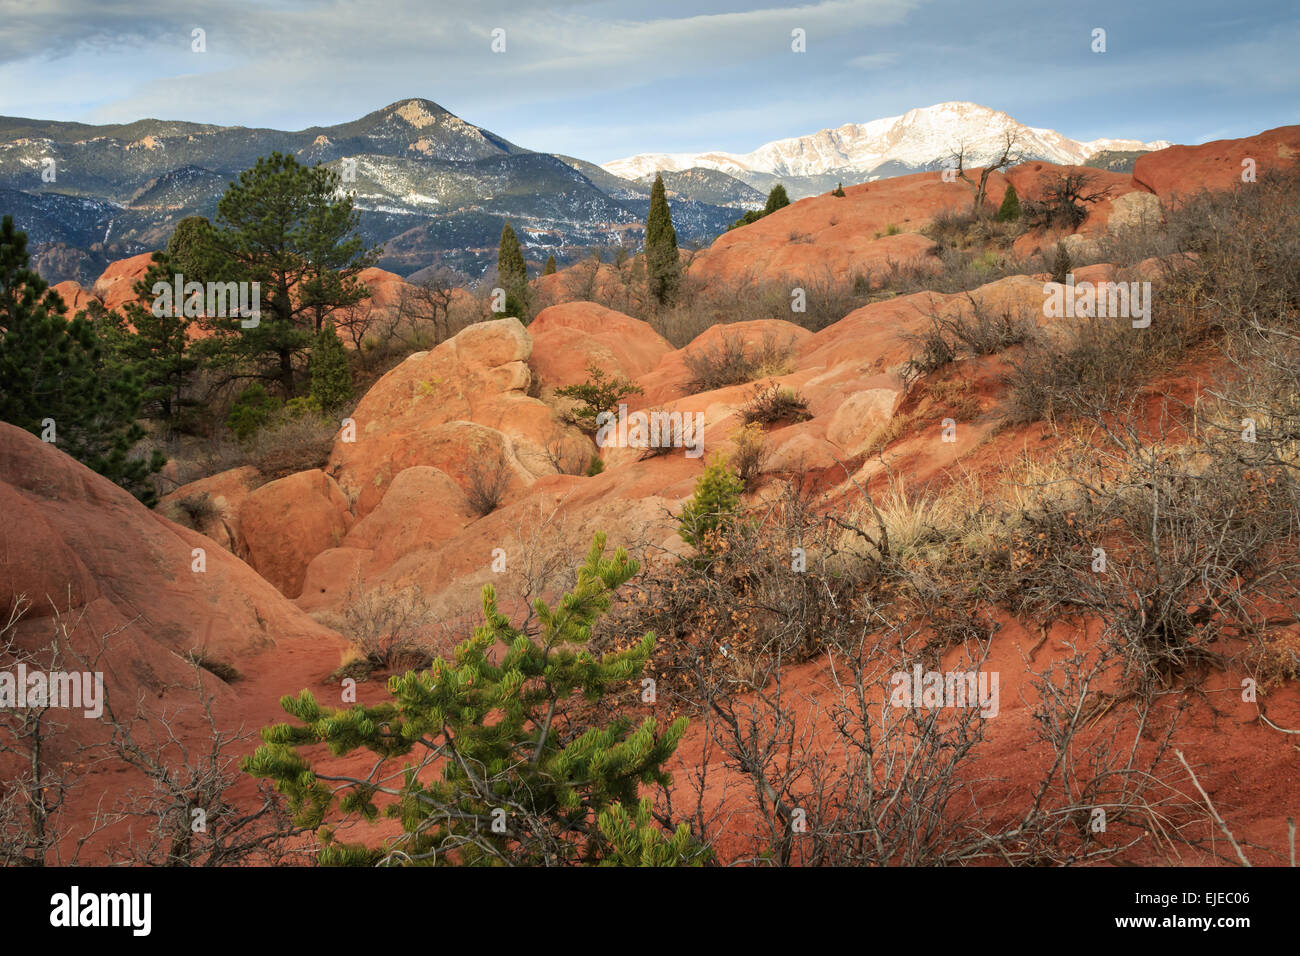 Pike's Peak seen from he High Point area of the Garden of the Gods in Colorado Springs, CO - Stock Image